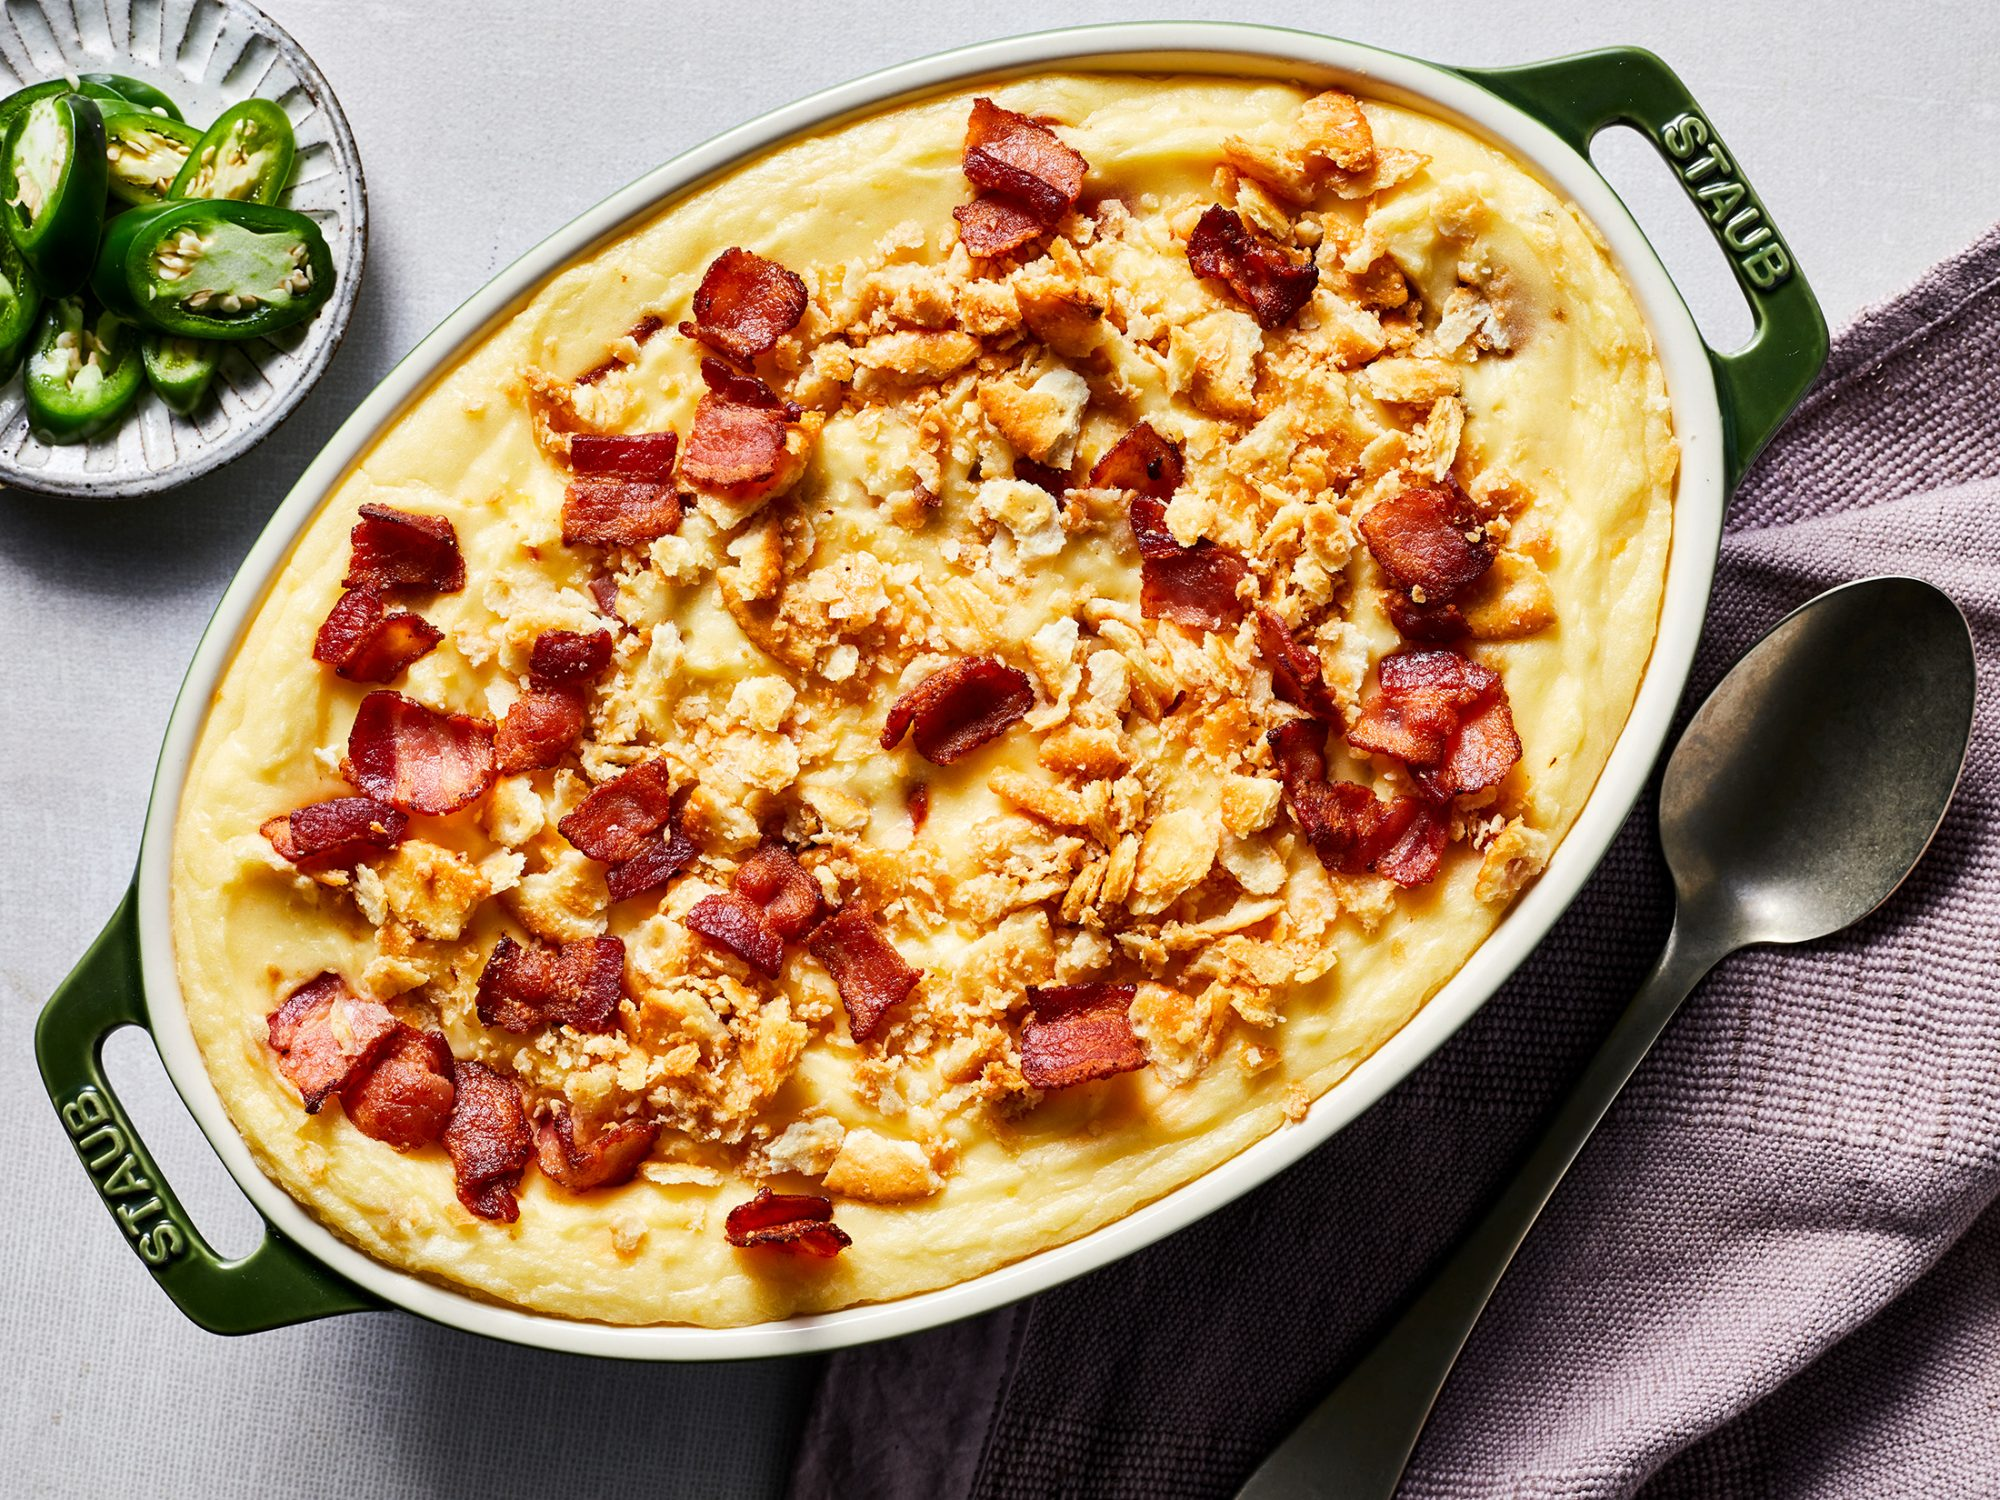 Jalapeño Popper Mashed Potato Bake image